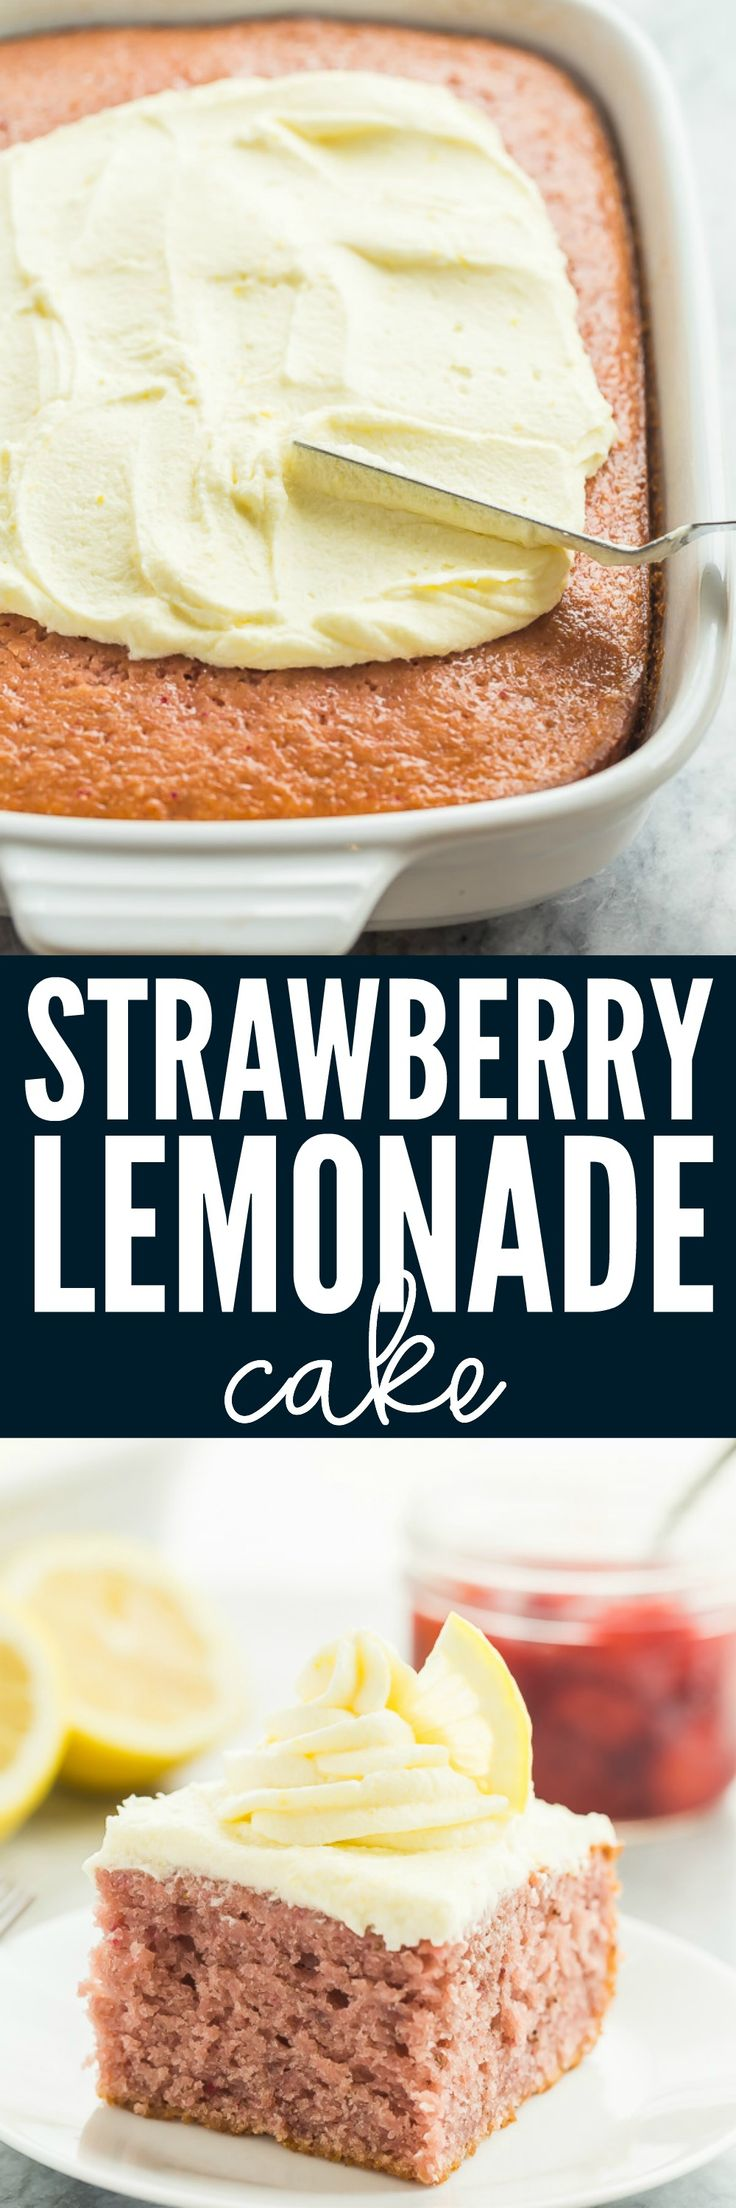 This Strawberry Lemonade Cake Recipe is the ultimate dessert for your summer cookout or barbecue! A moist strawberry cake is topped with a creamy lemon frosting -- it's fresh and fruity and made with real strawberries! Easy to make ahead and freezer friendly.